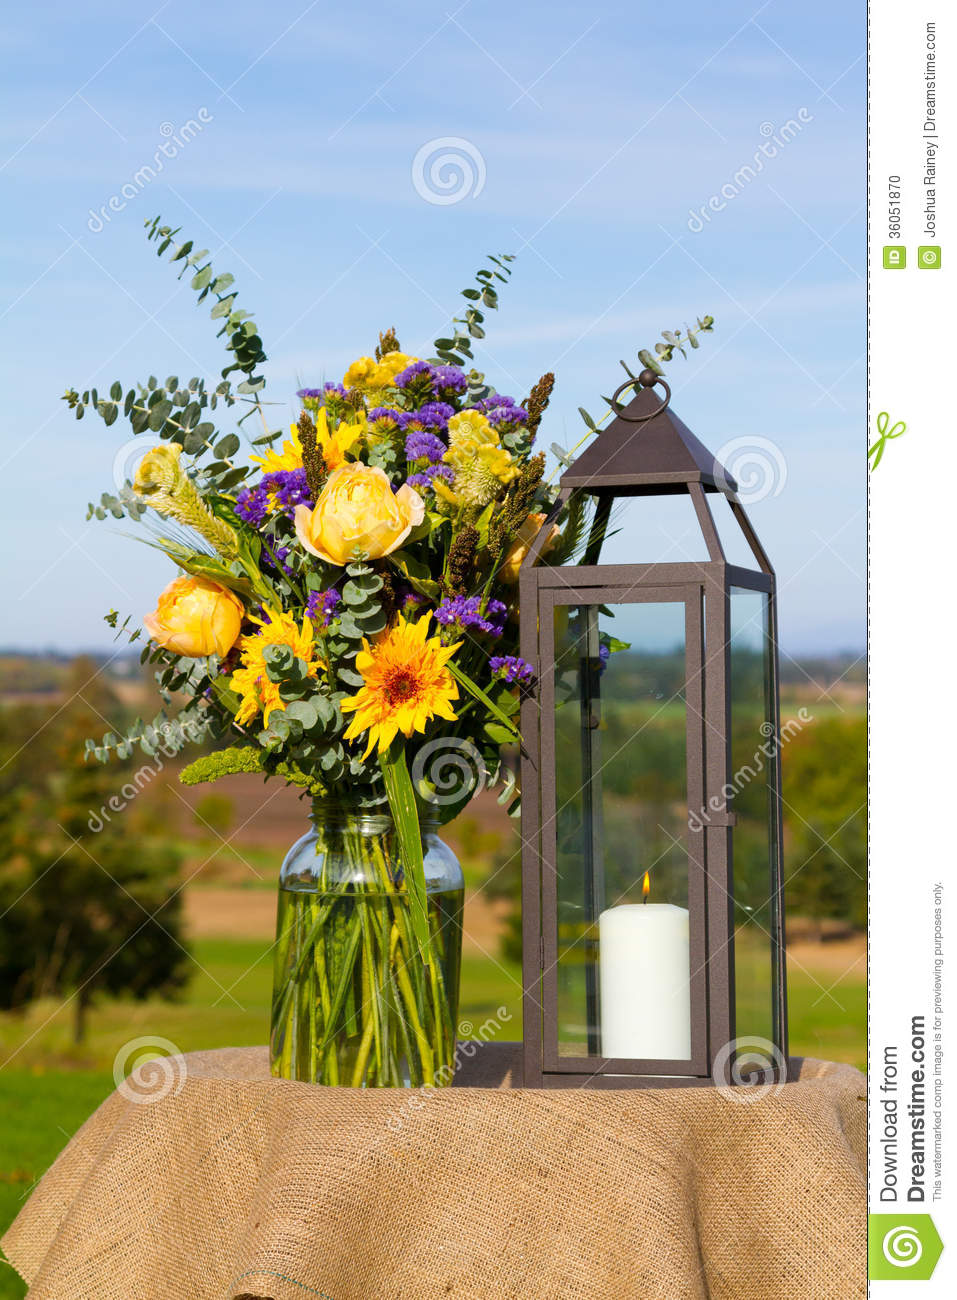 wedding centerpiece details stock photo image of candle bouquet 36051870. Black Bedroom Furniture Sets. Home Design Ideas